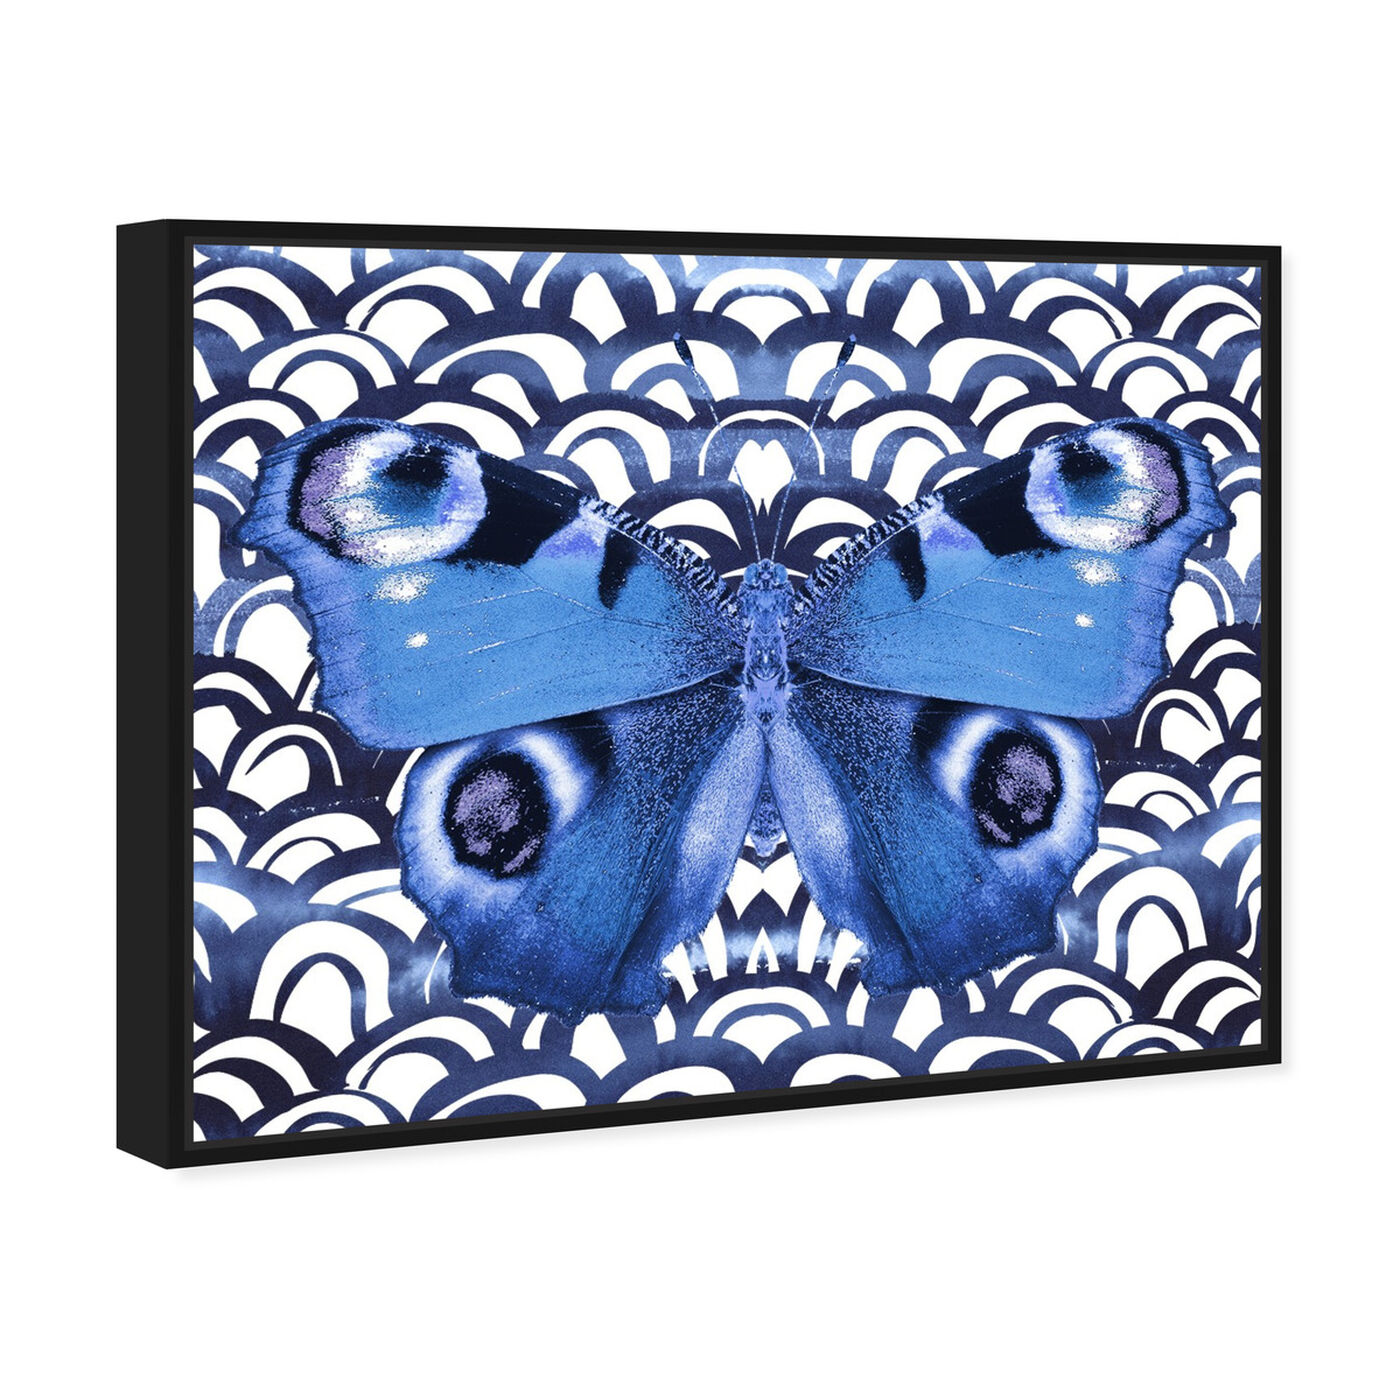 Angled view of Butterfly Indigo featuring animals and insects art.